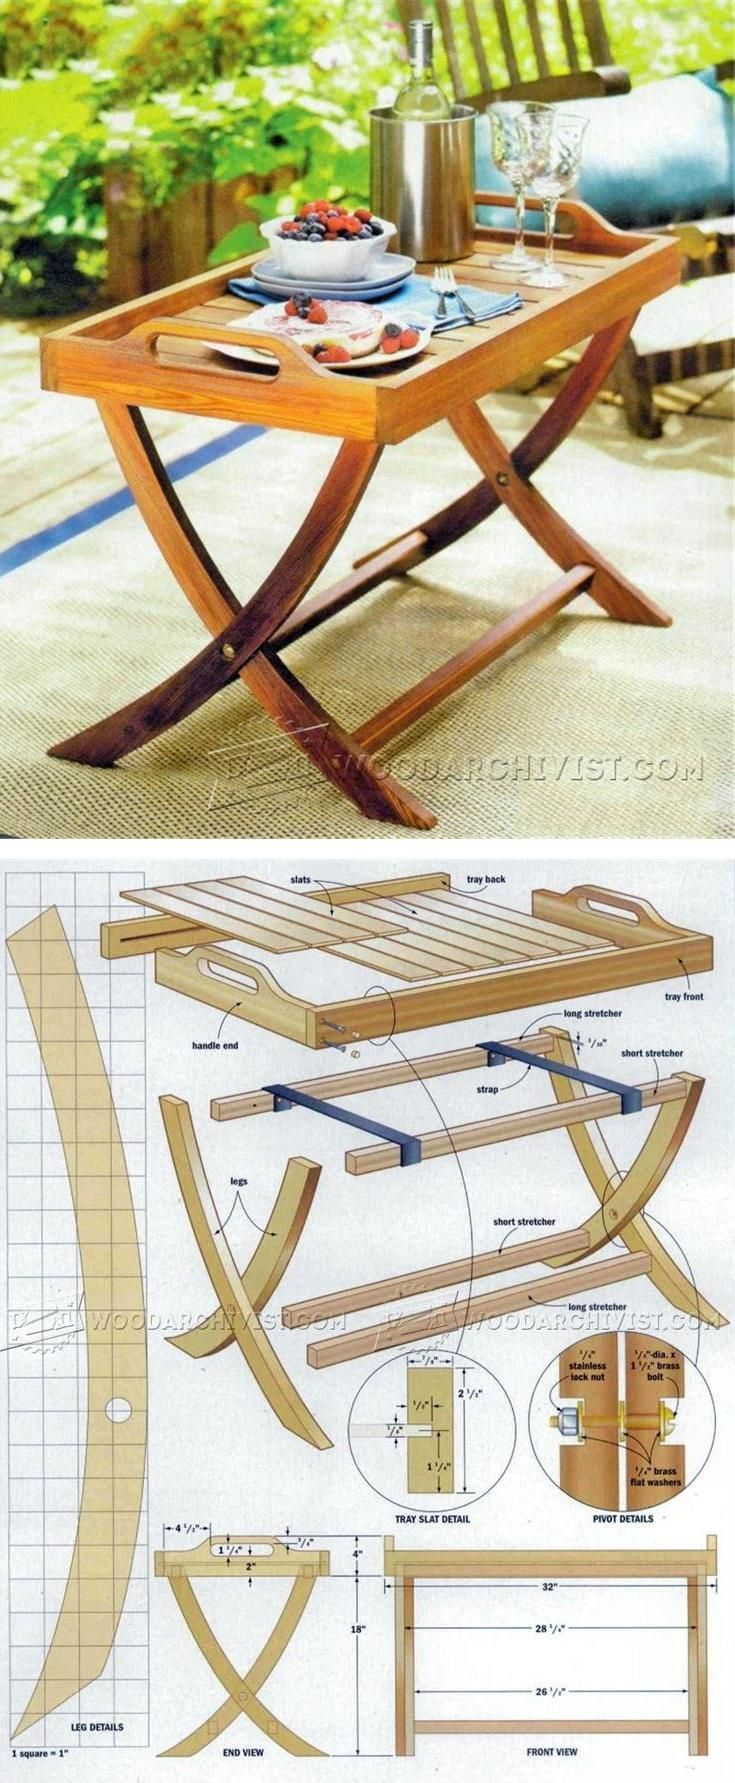 Folding Serving Tray Table Plans Outdoor Furniture Plans And Projects Woodarc Woodworking Furniture Plans Diy Outdoor Furniture Plans Diy Outdoor Furniture